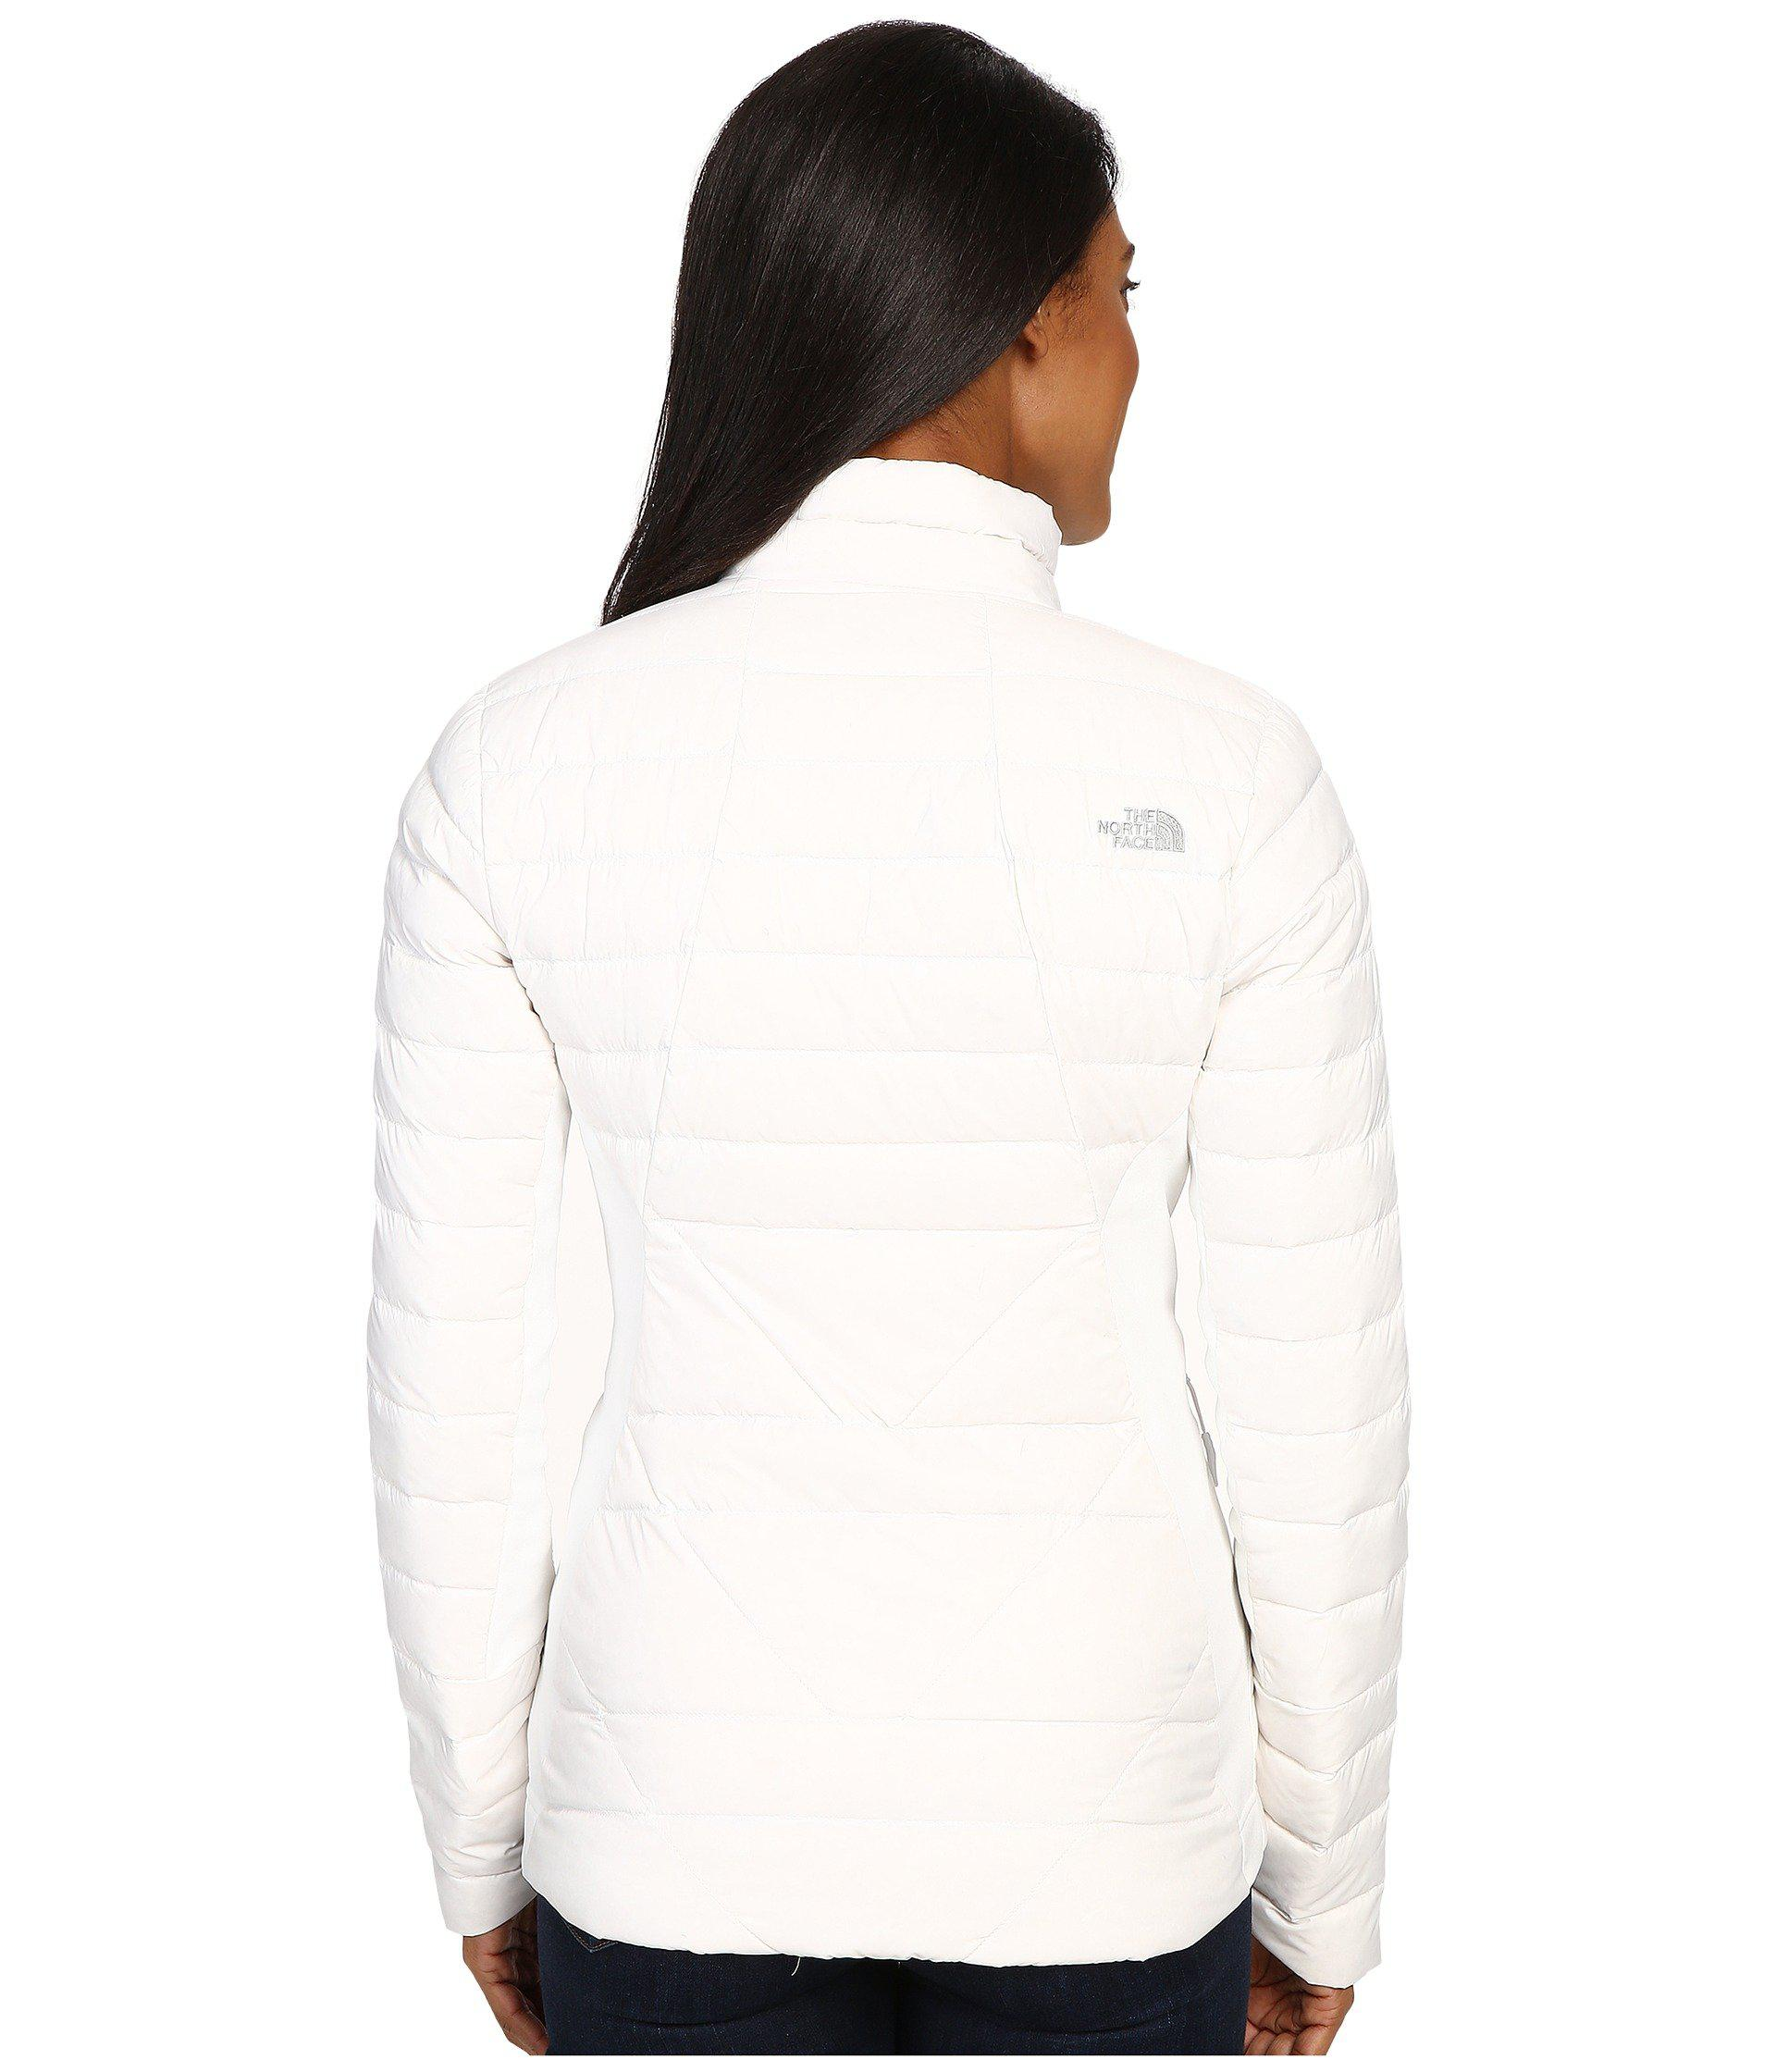 08f5d35febcd The North Face - White Lucia Hybrid Down Jacket - Lyst. View fullscreen